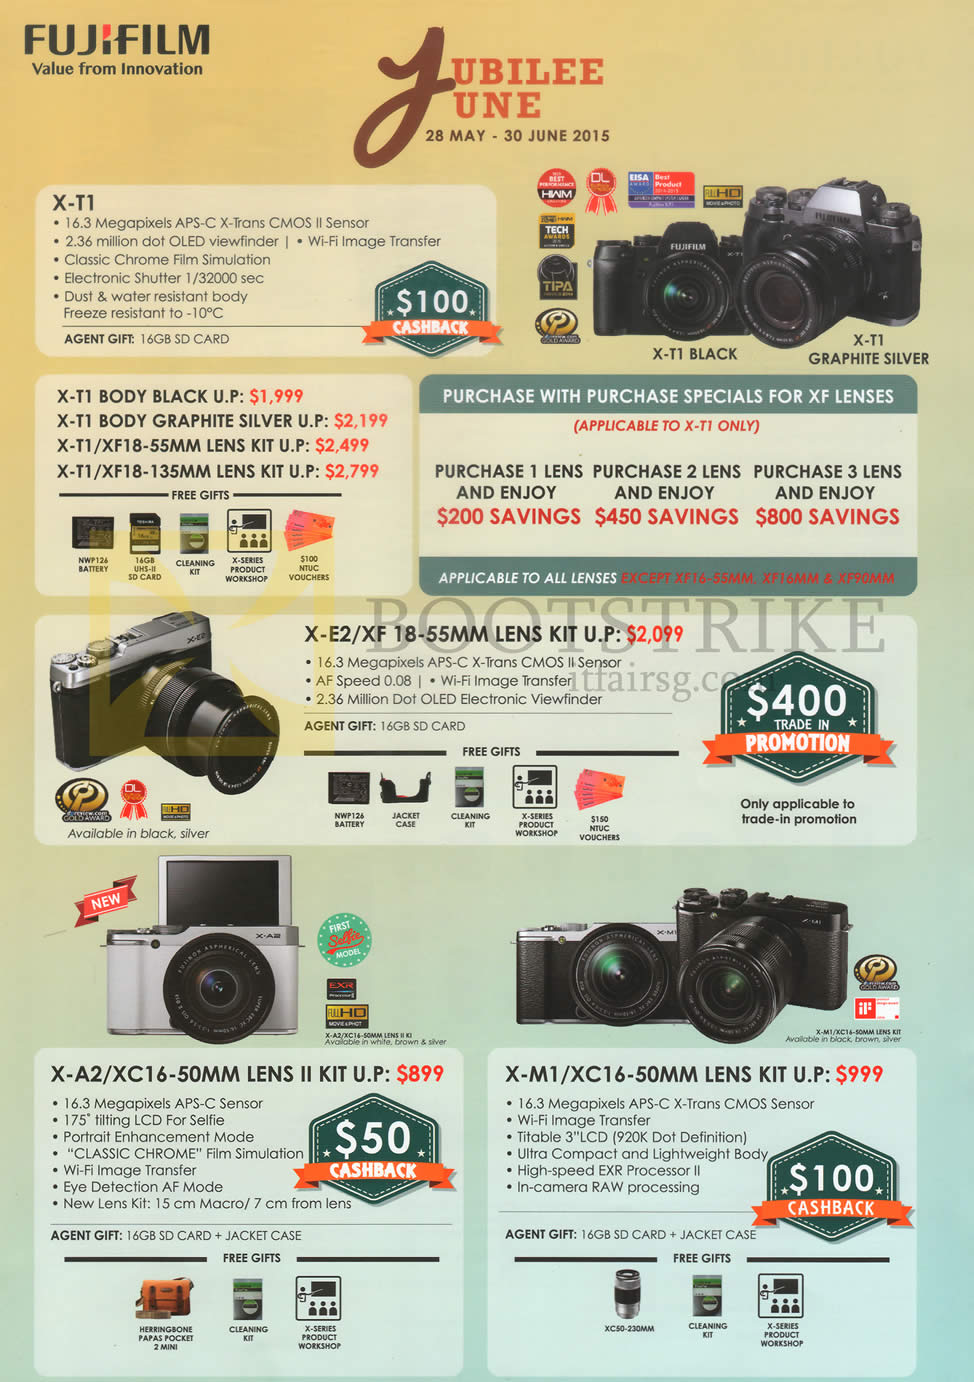 PC SHOW 2015 price list image brochure of Fujifilm Digital Cameras X-T1, X-E2, X-A2, X-M1